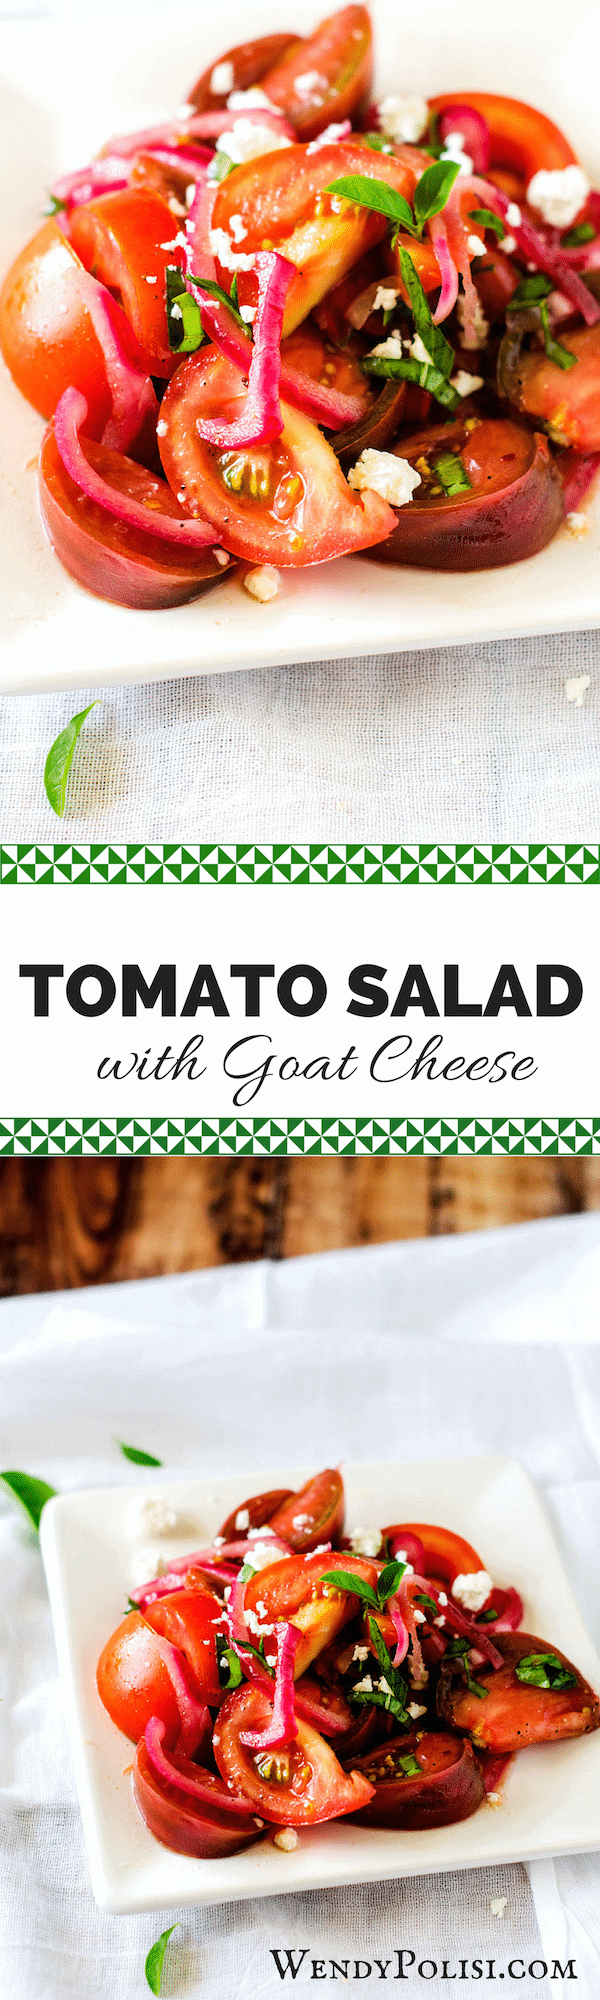 Tomato Salad with Goat Cheese - Wendy Polisi